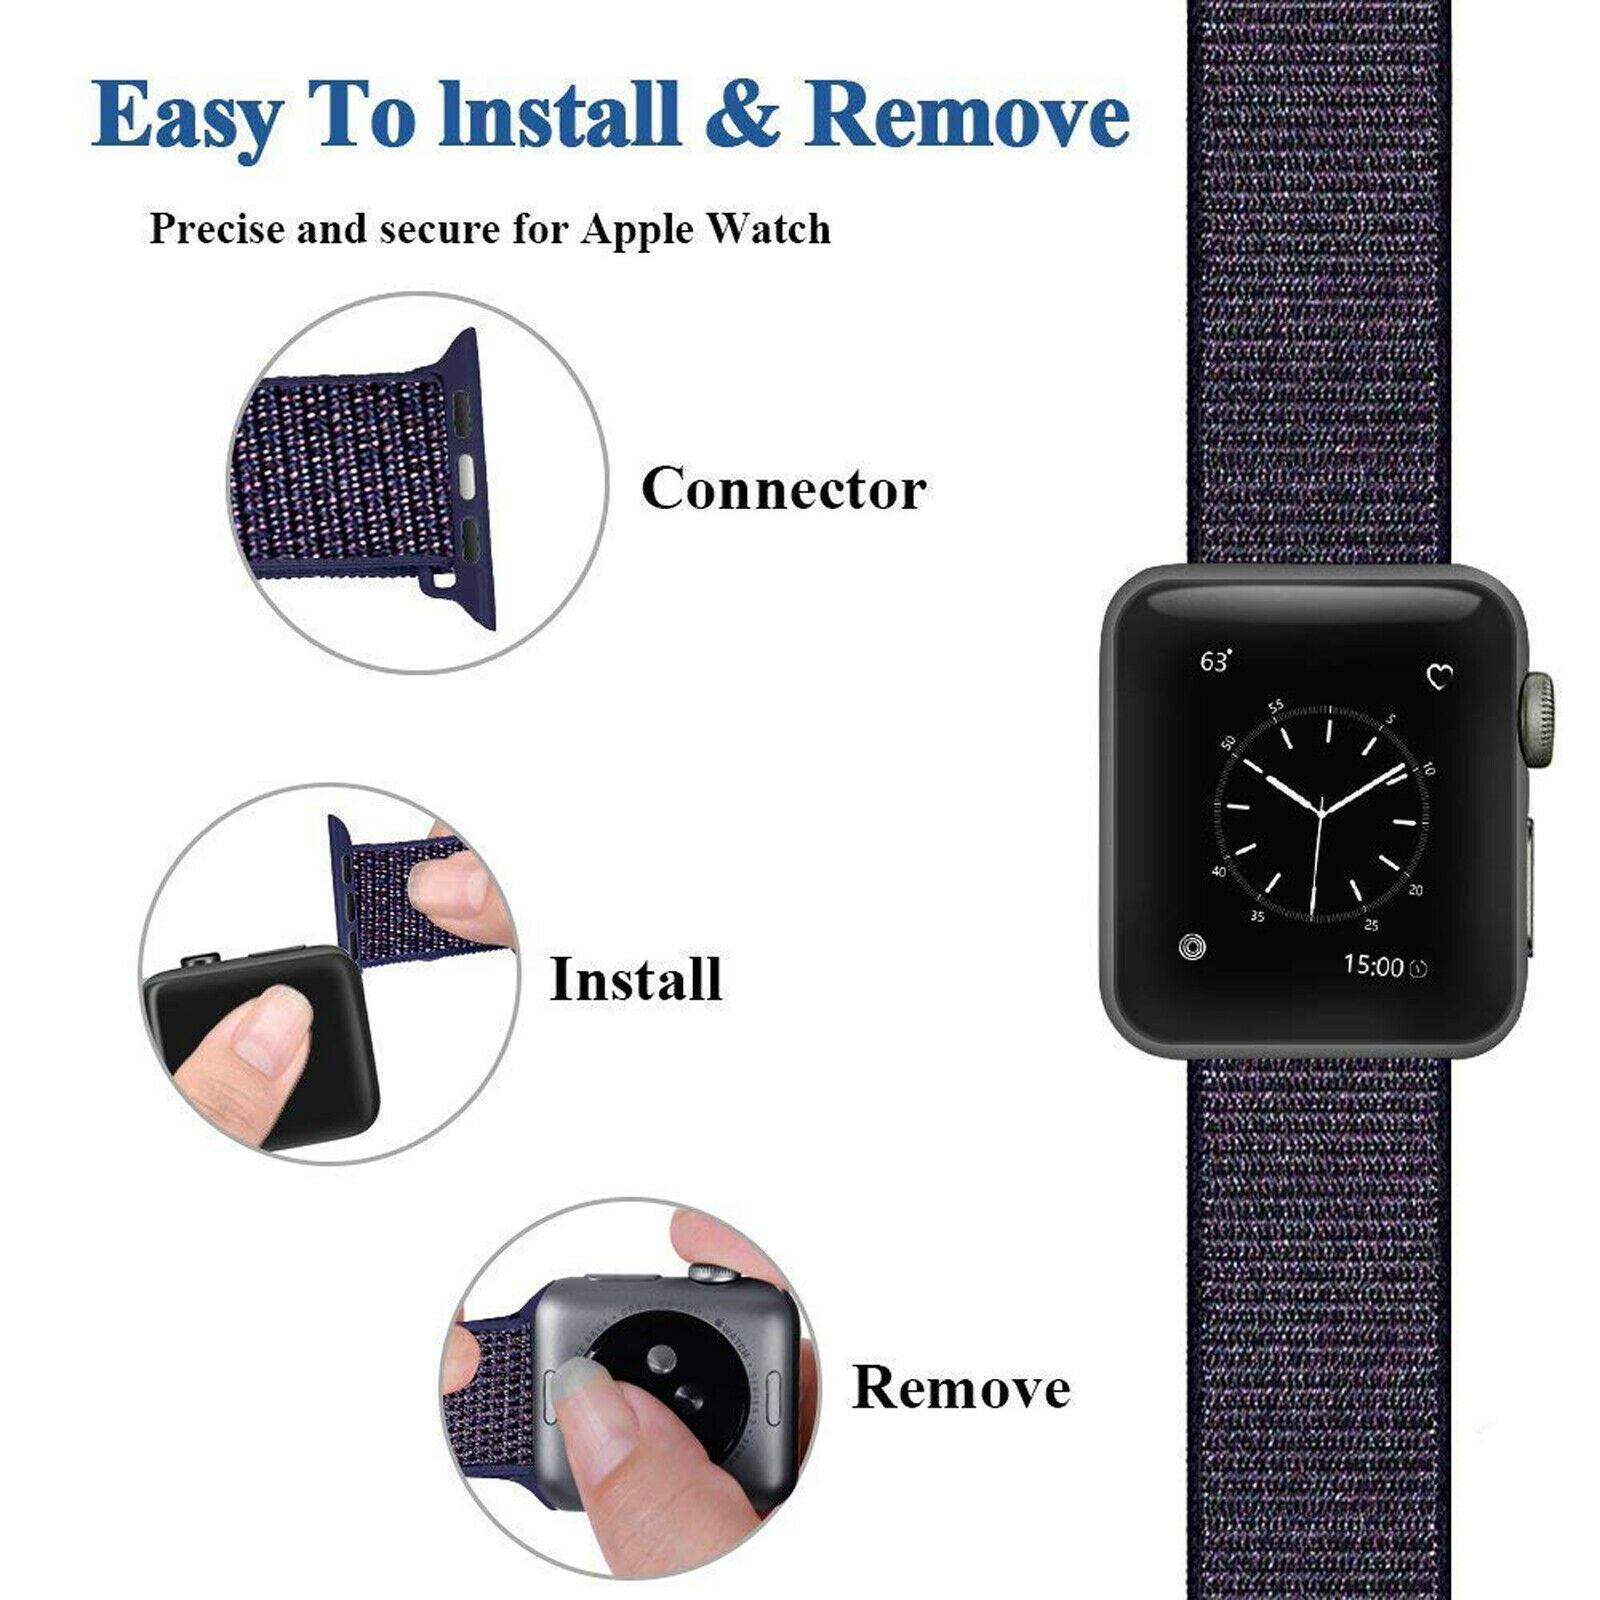 Band-Strap-For-Apple-Watch-Adjustable-Waterproof-Braided-Nylon-Material thumbnail 48